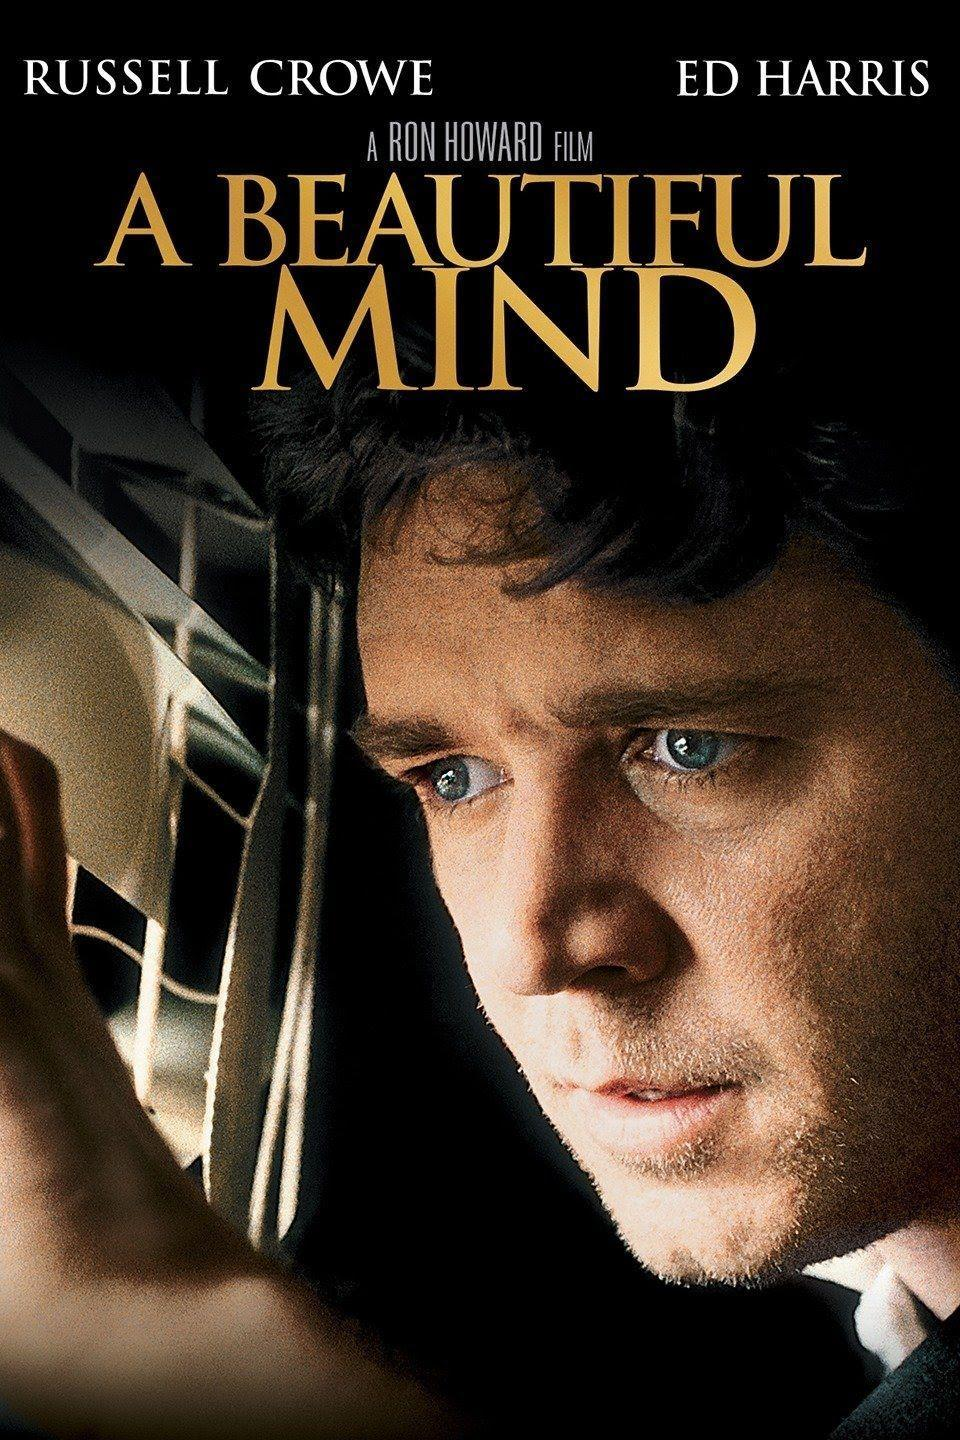 """<p><a class=""""link rapid-noclick-resp"""" href=""""https://www.amazon.com/Beautiful-Mind-Russell-Crowe/dp/B00ENYKBD0/ref=sr_1_1?dchild=1&keywords=a+beautiful+mind&qid=1614181160&sr=8-1&tag=syn-yahoo-20&ascsubtag=%5Bartid%7C10067.g.15907978%5Bsrc%7Cyahoo-us"""" rel=""""nofollow noopener"""" target=""""_blank"""" data-ylk=""""slk:Watch Now"""">Watch Now</a></p><p>This 2001 biographical drama is based on the life of Nobel Prize-winning mathematician and economist John Nash (and inspired by the Pulitzer-winning book of the same name by Sylvia Nasar). Russell Crowe plays the brilliant Nash, whose rising career and stardom is at risk of being derailed by his own personal demons. <em>A Beautiful Mind</em> won four Academy Awards, for Best Picture, Best Director, Best Adapted Screenplay, and Best Supporting Actress (Jennifer Connelly).</p>"""